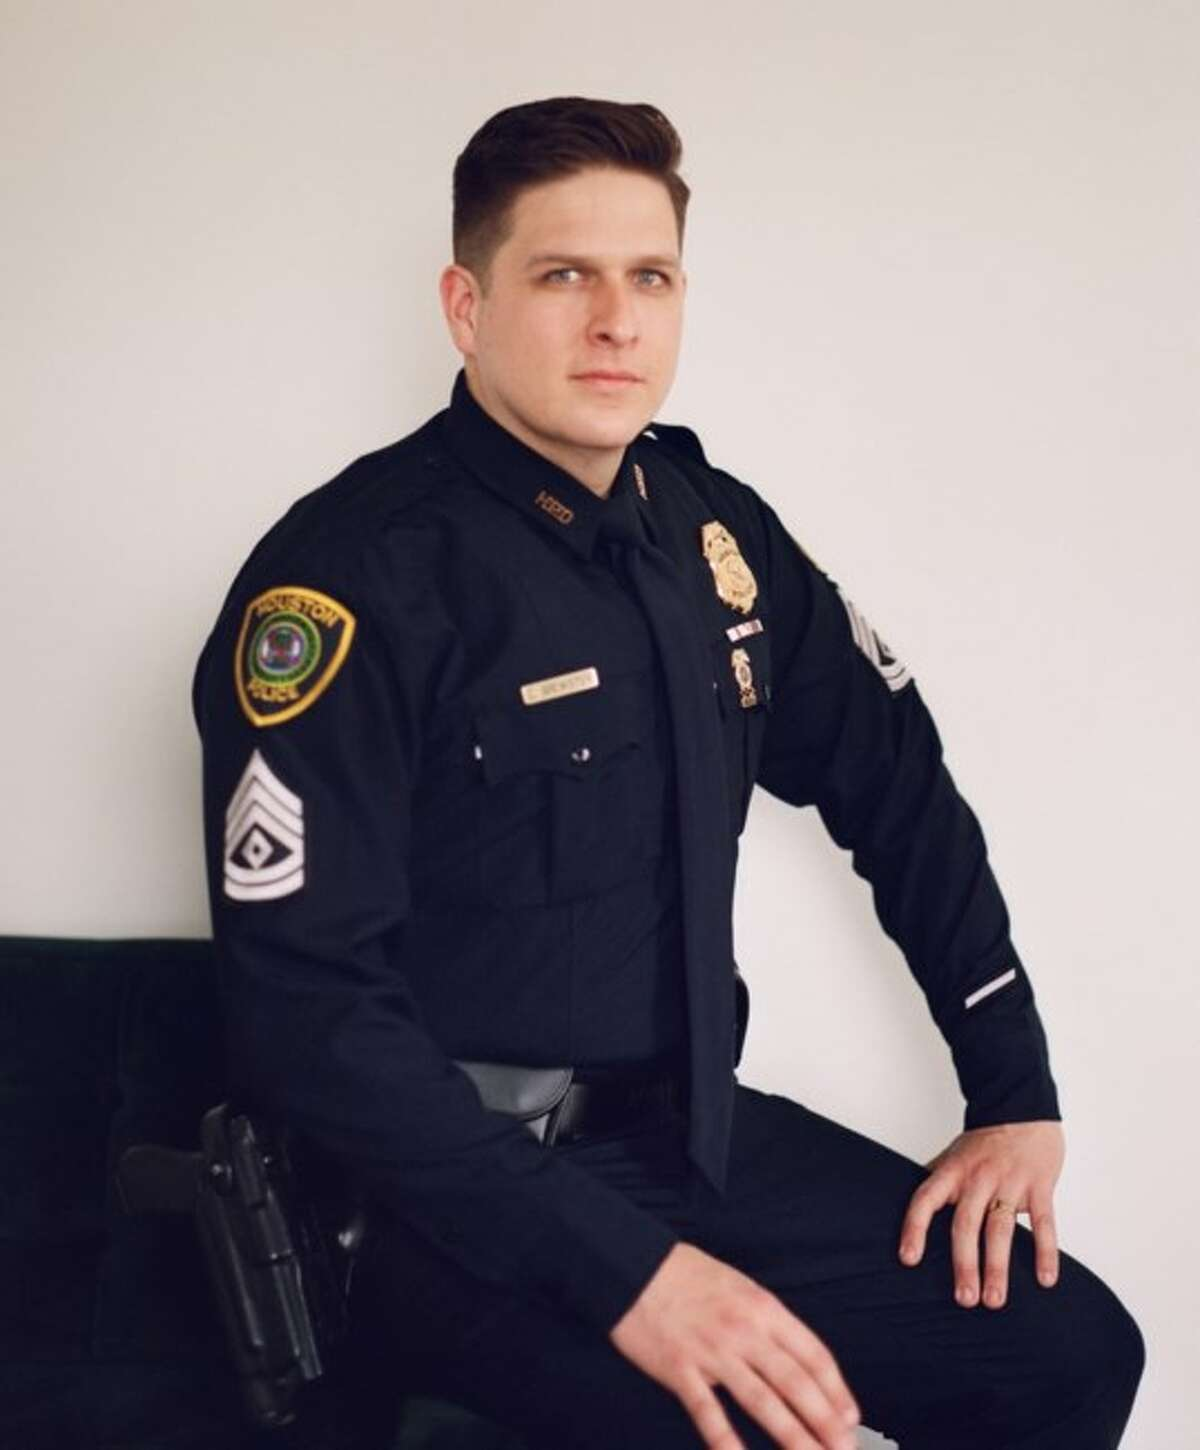 Sgt. Christopher Brewster, Houston Police Department.